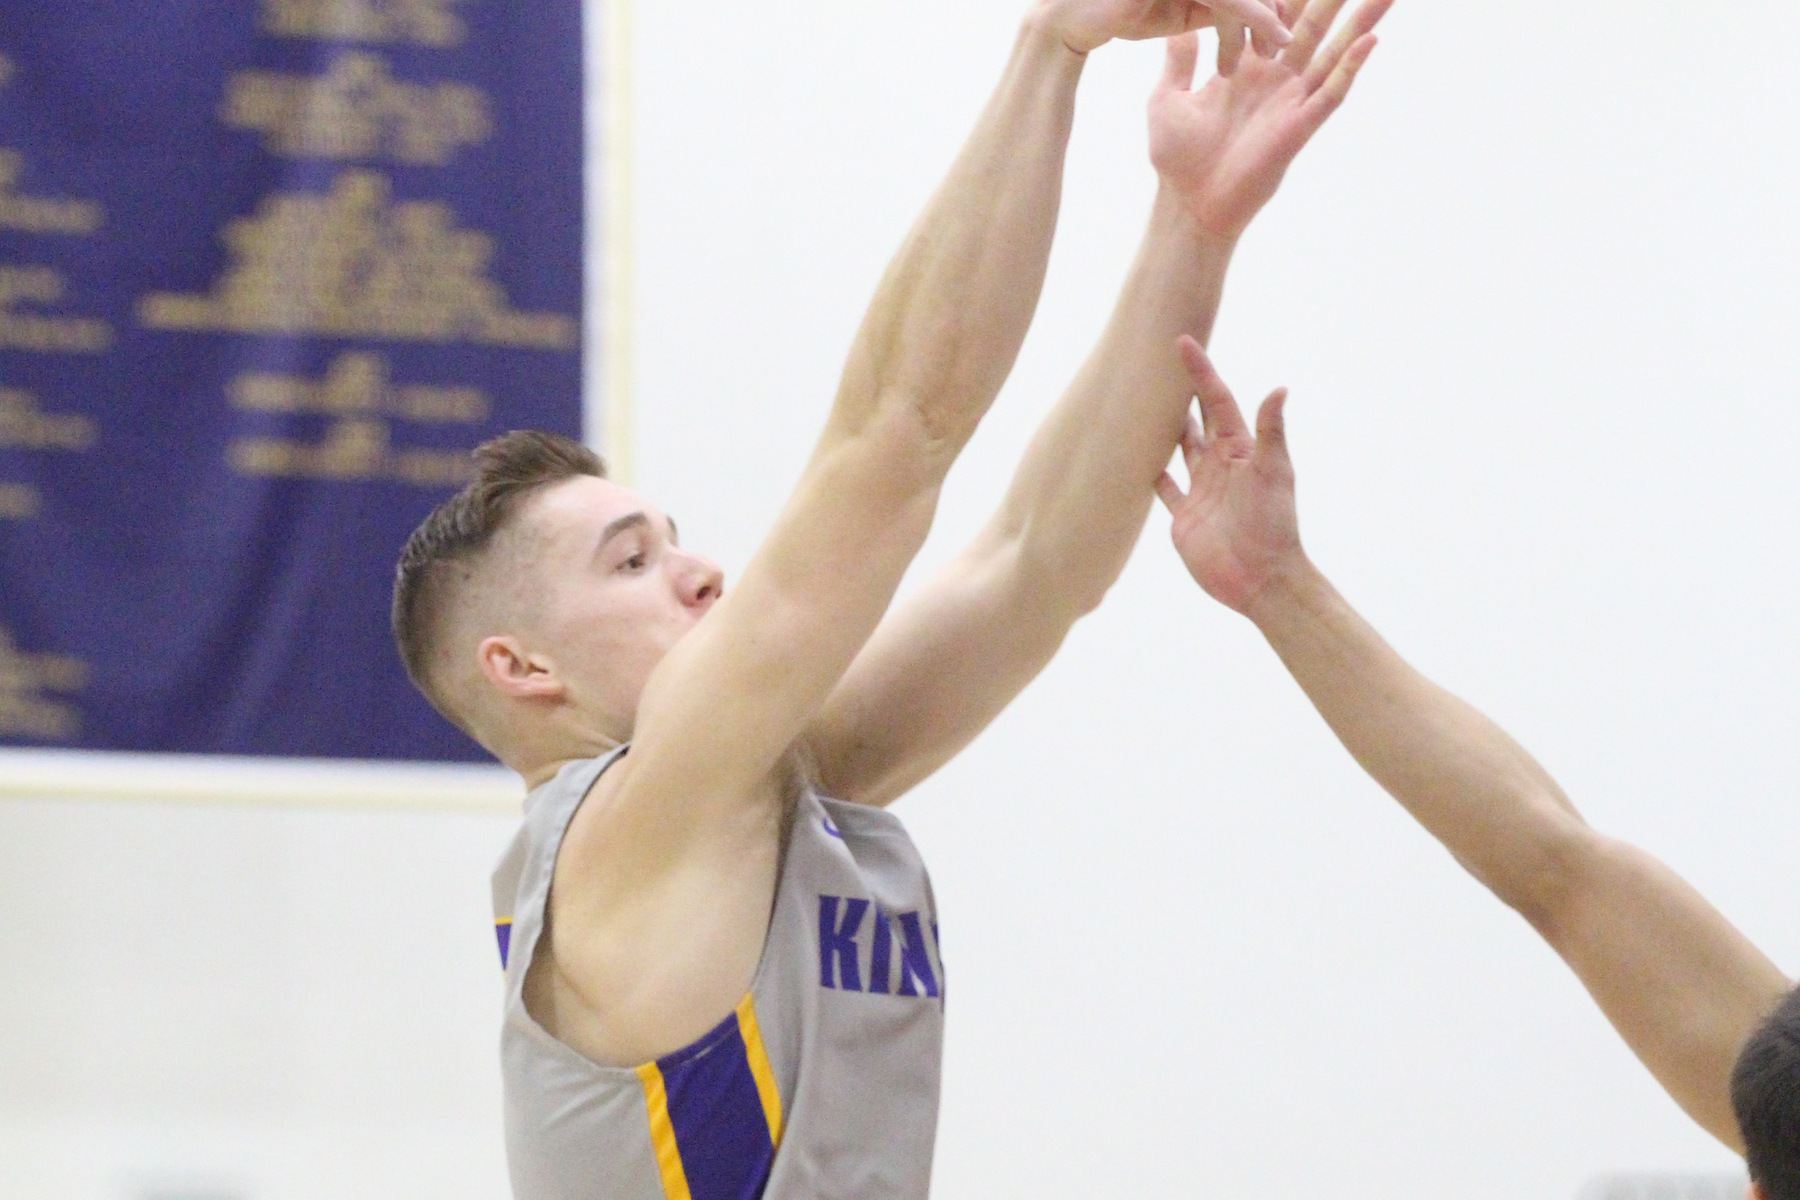 Kyle Ferreira scores his 1,000th-career point with the Kingsmen. (Photo: Danielle Roumbos)